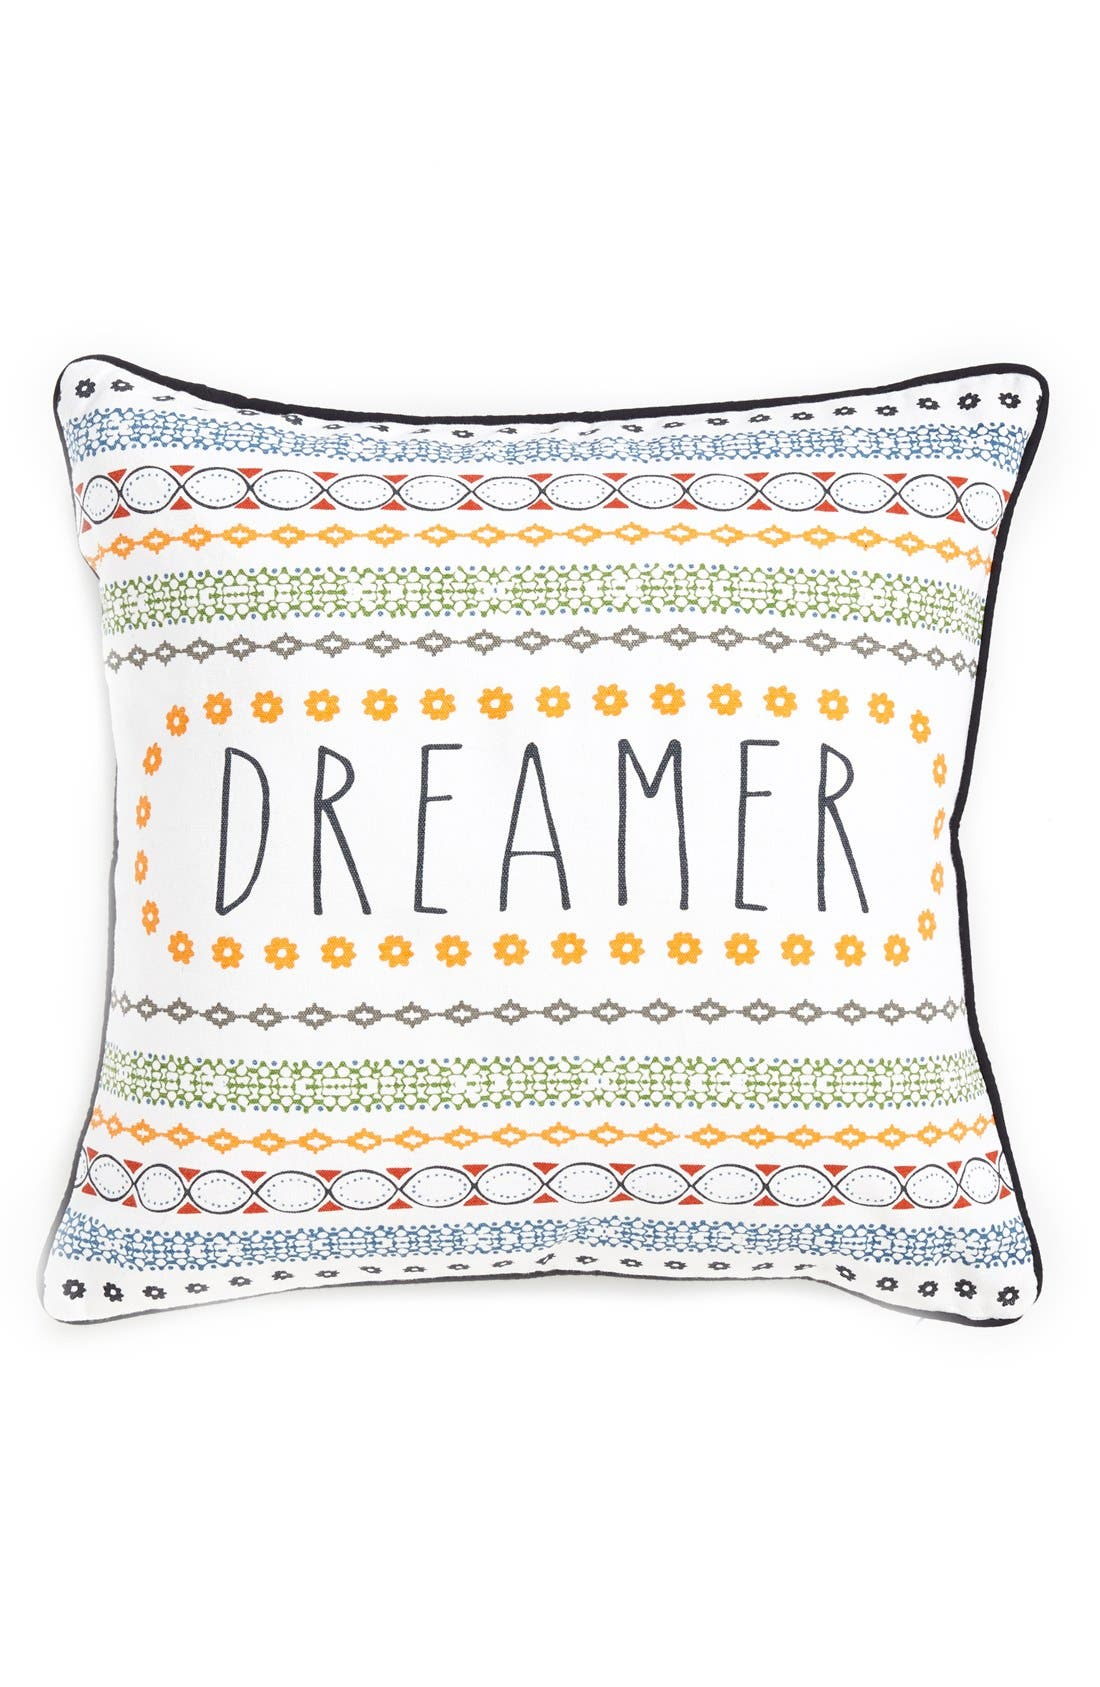 Alternate Image 1 Selected - Levtex 'Dreamer' Accent Pillow